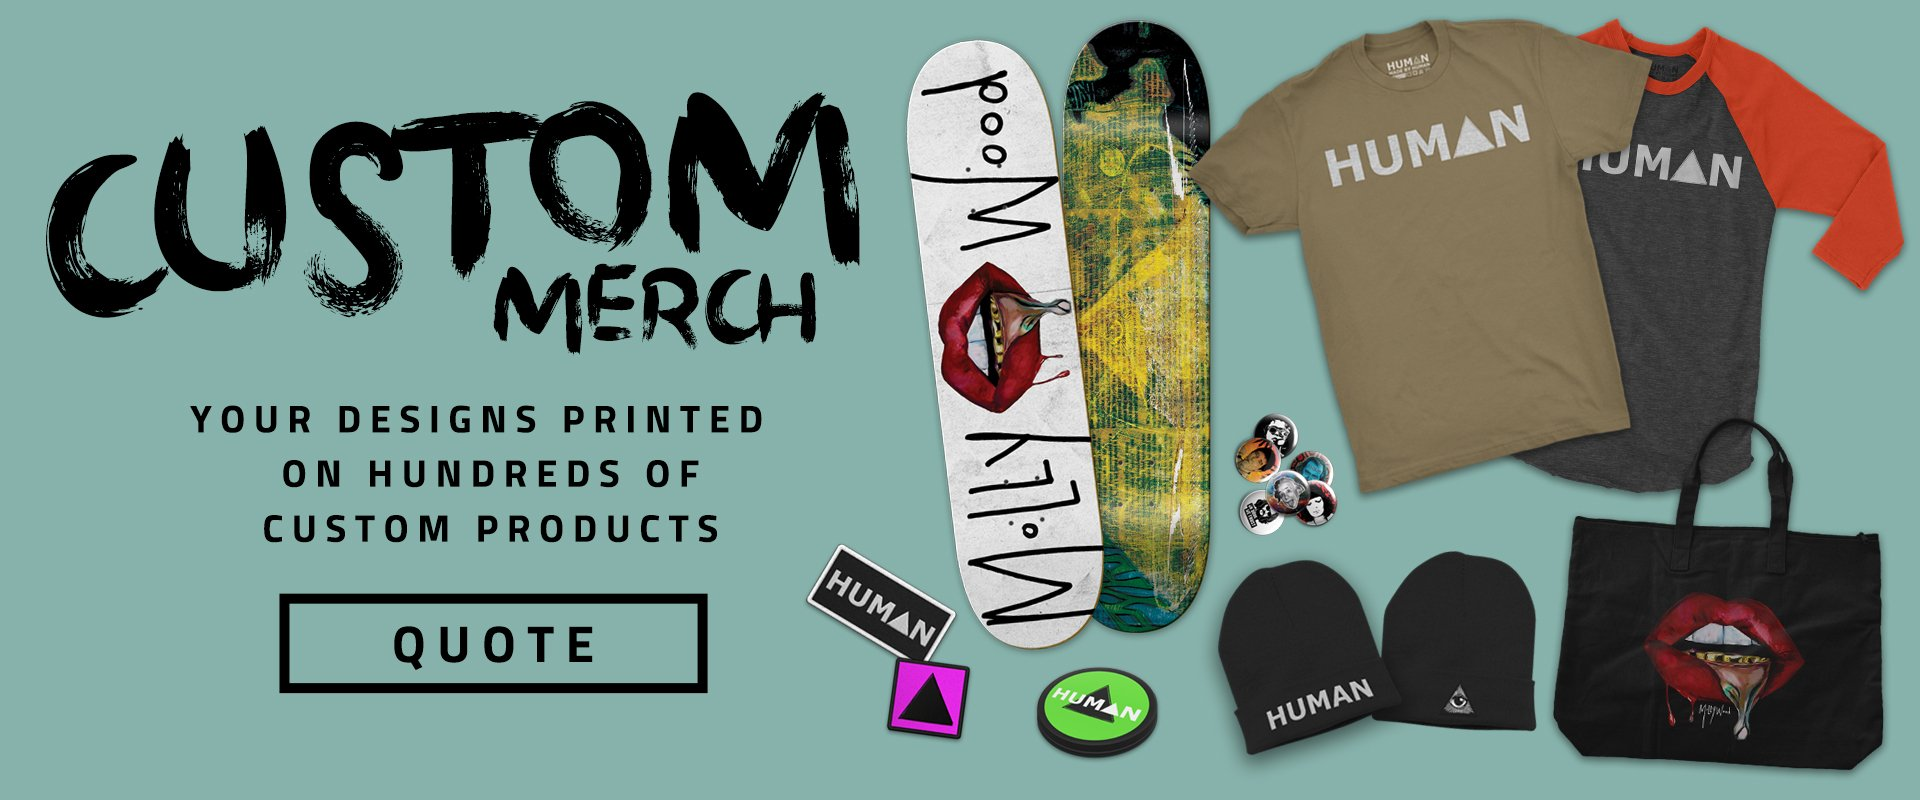 Created by Human | Custom Merch